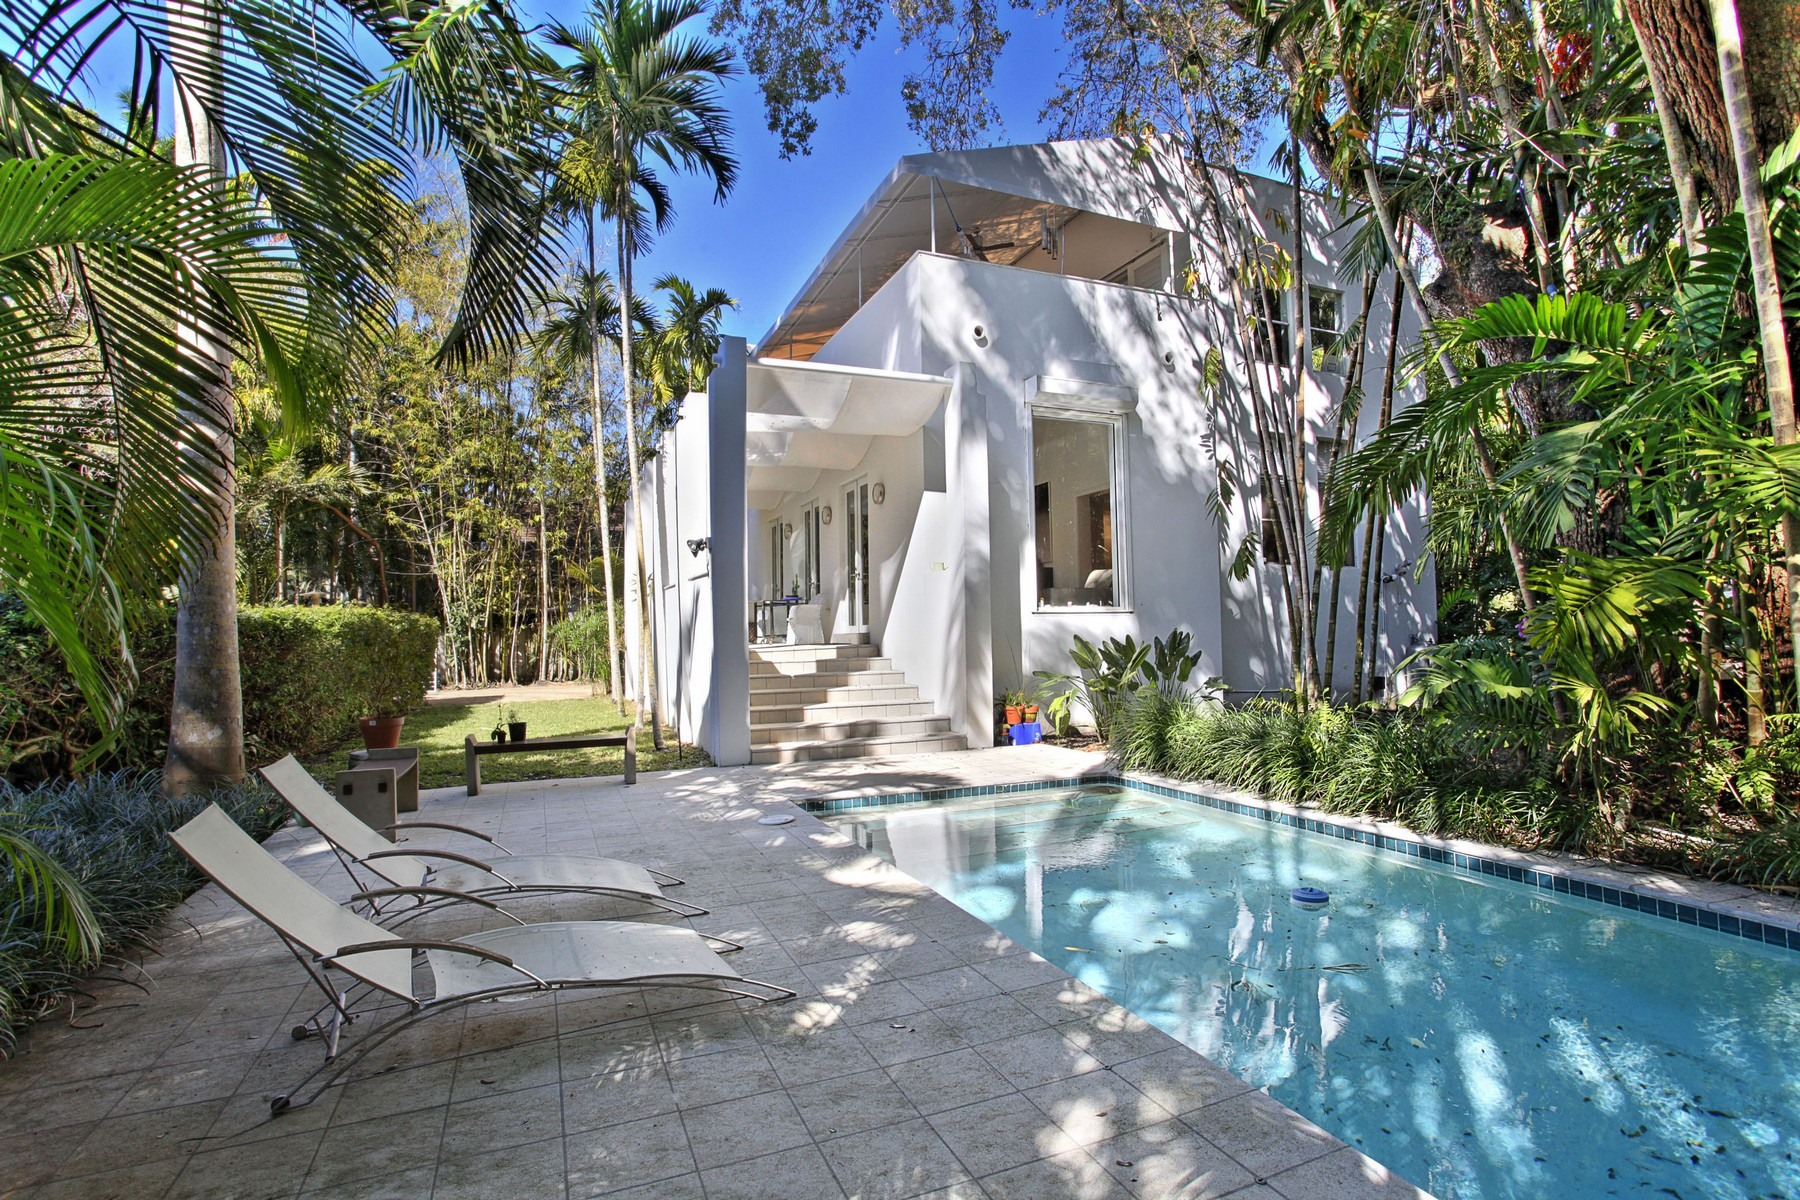 Single Family Home for Sale at 3721 Hibiscus St Coconut Grove, Florida, 33133 United States